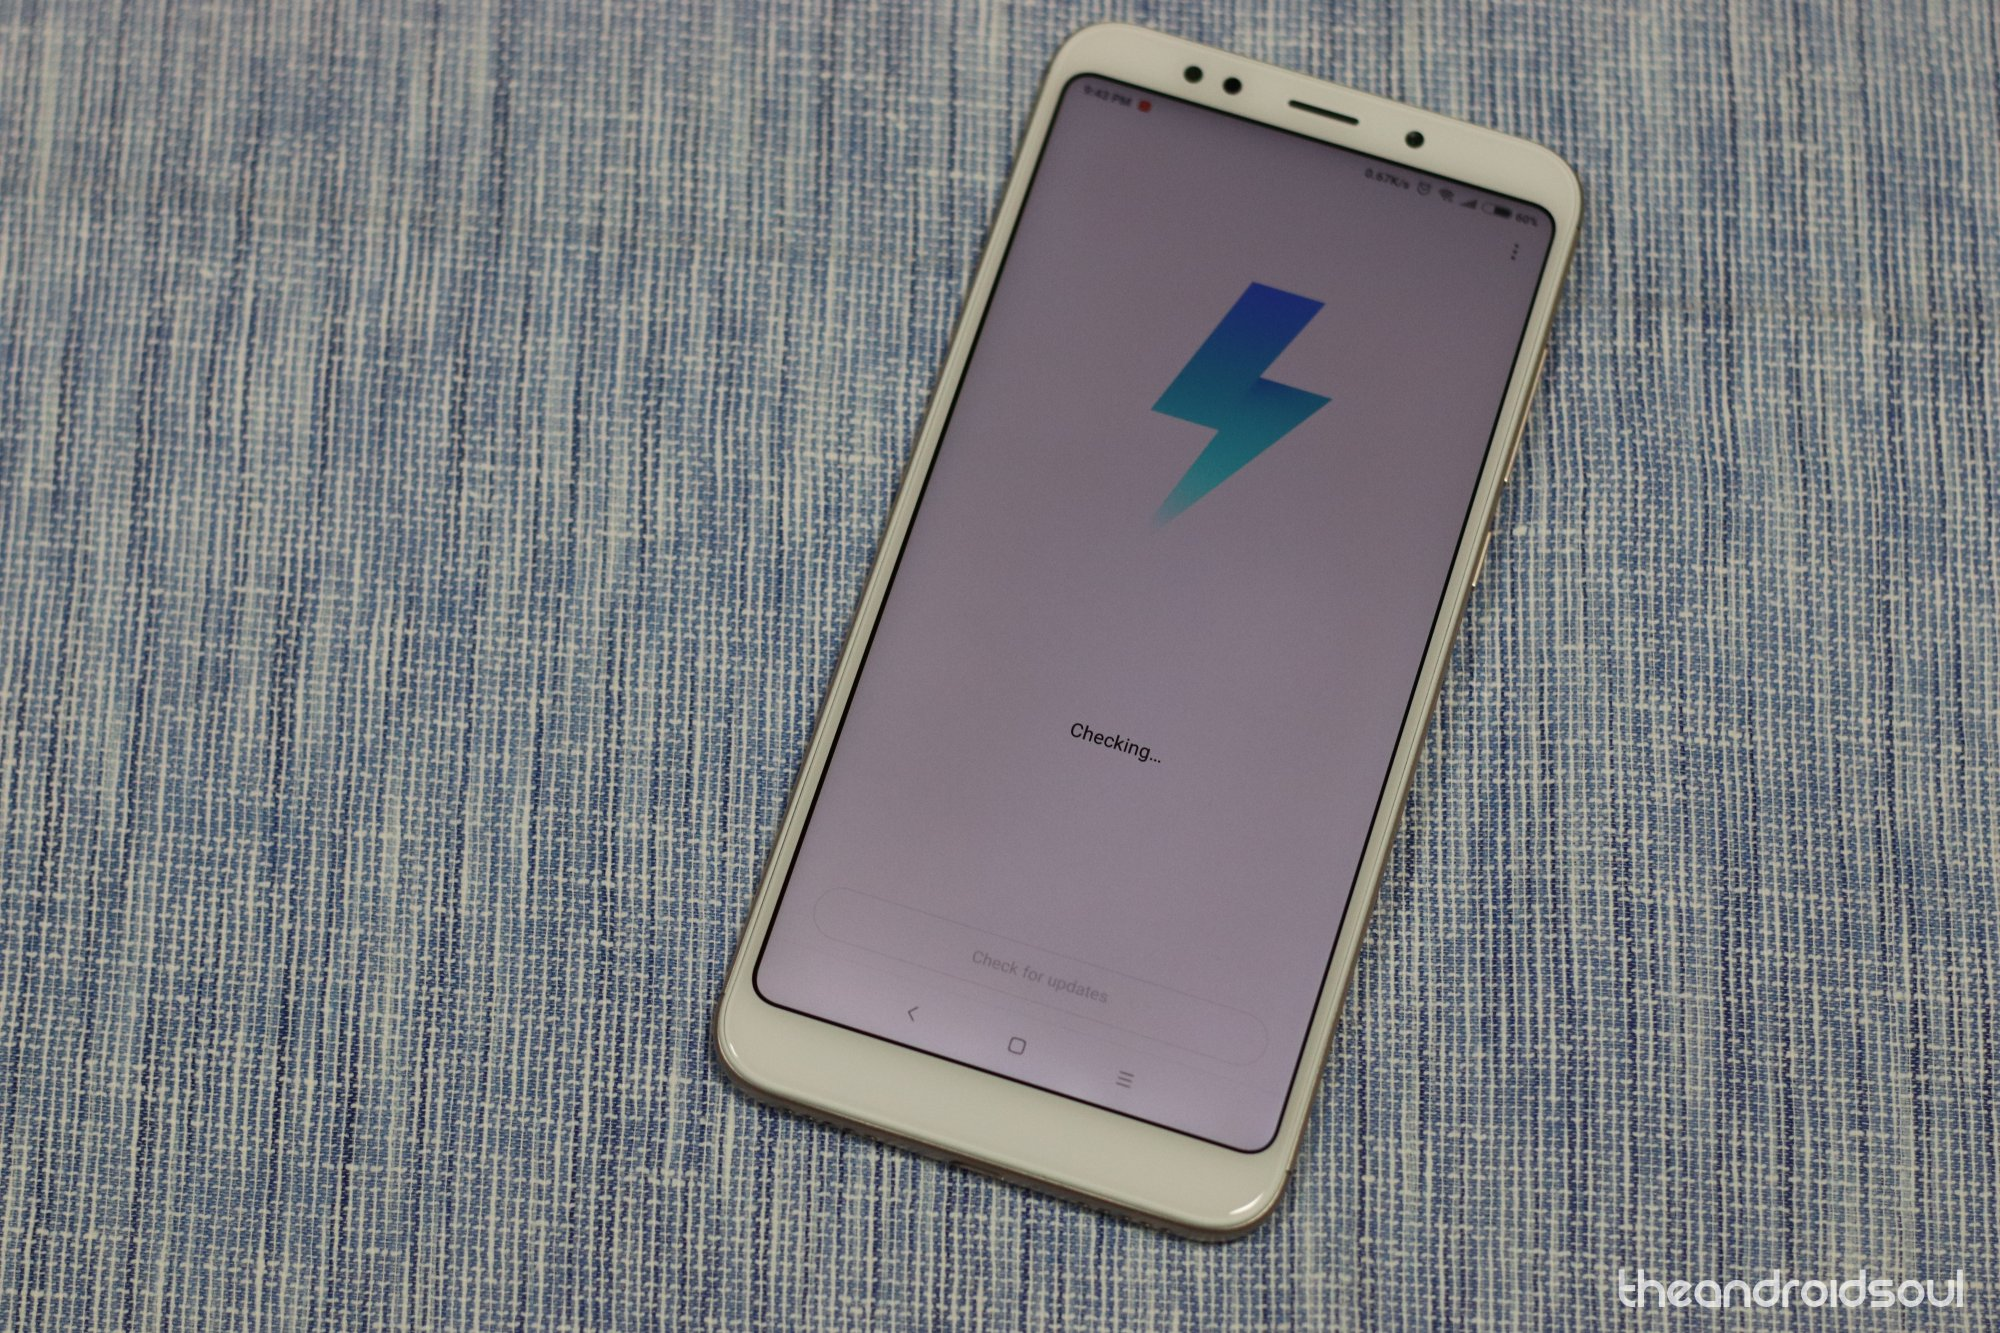 Xiaomi Redmi Note 5 With 18 9 Display And Front Led Flash: Xiaomi Redmi Note 5: Five Reasons To Buy It, And Three Not To